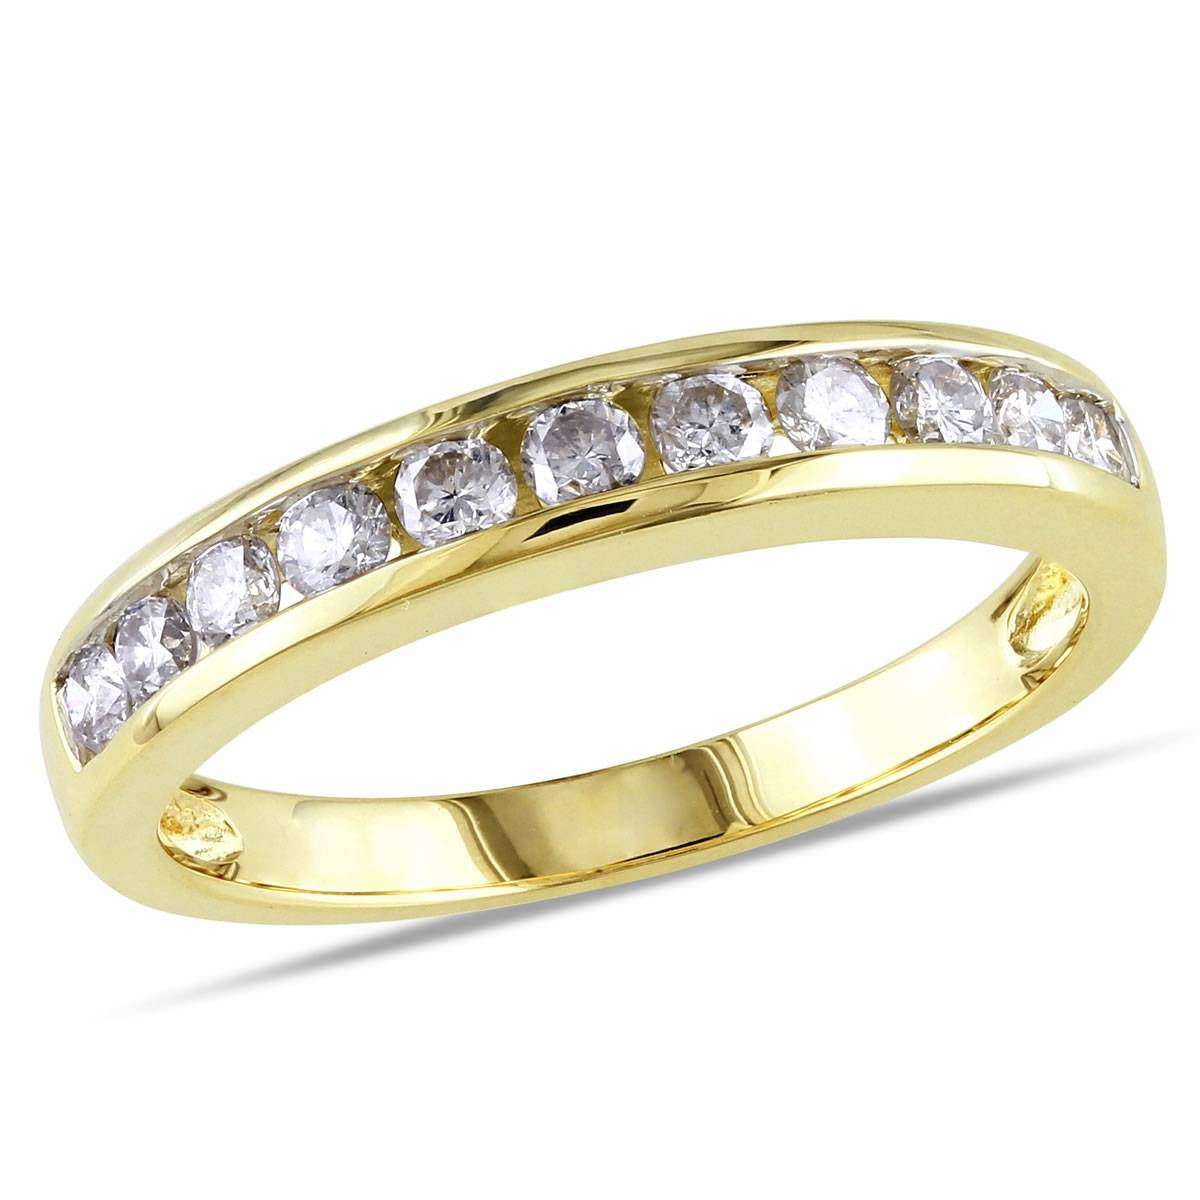 10K Yellow Gold 1/2 Ct Diamond Tw Eternity Anniversary Ring, Gh I2 Inside Latest Gold Diamond Anniversary Rings (View 11 of 25)